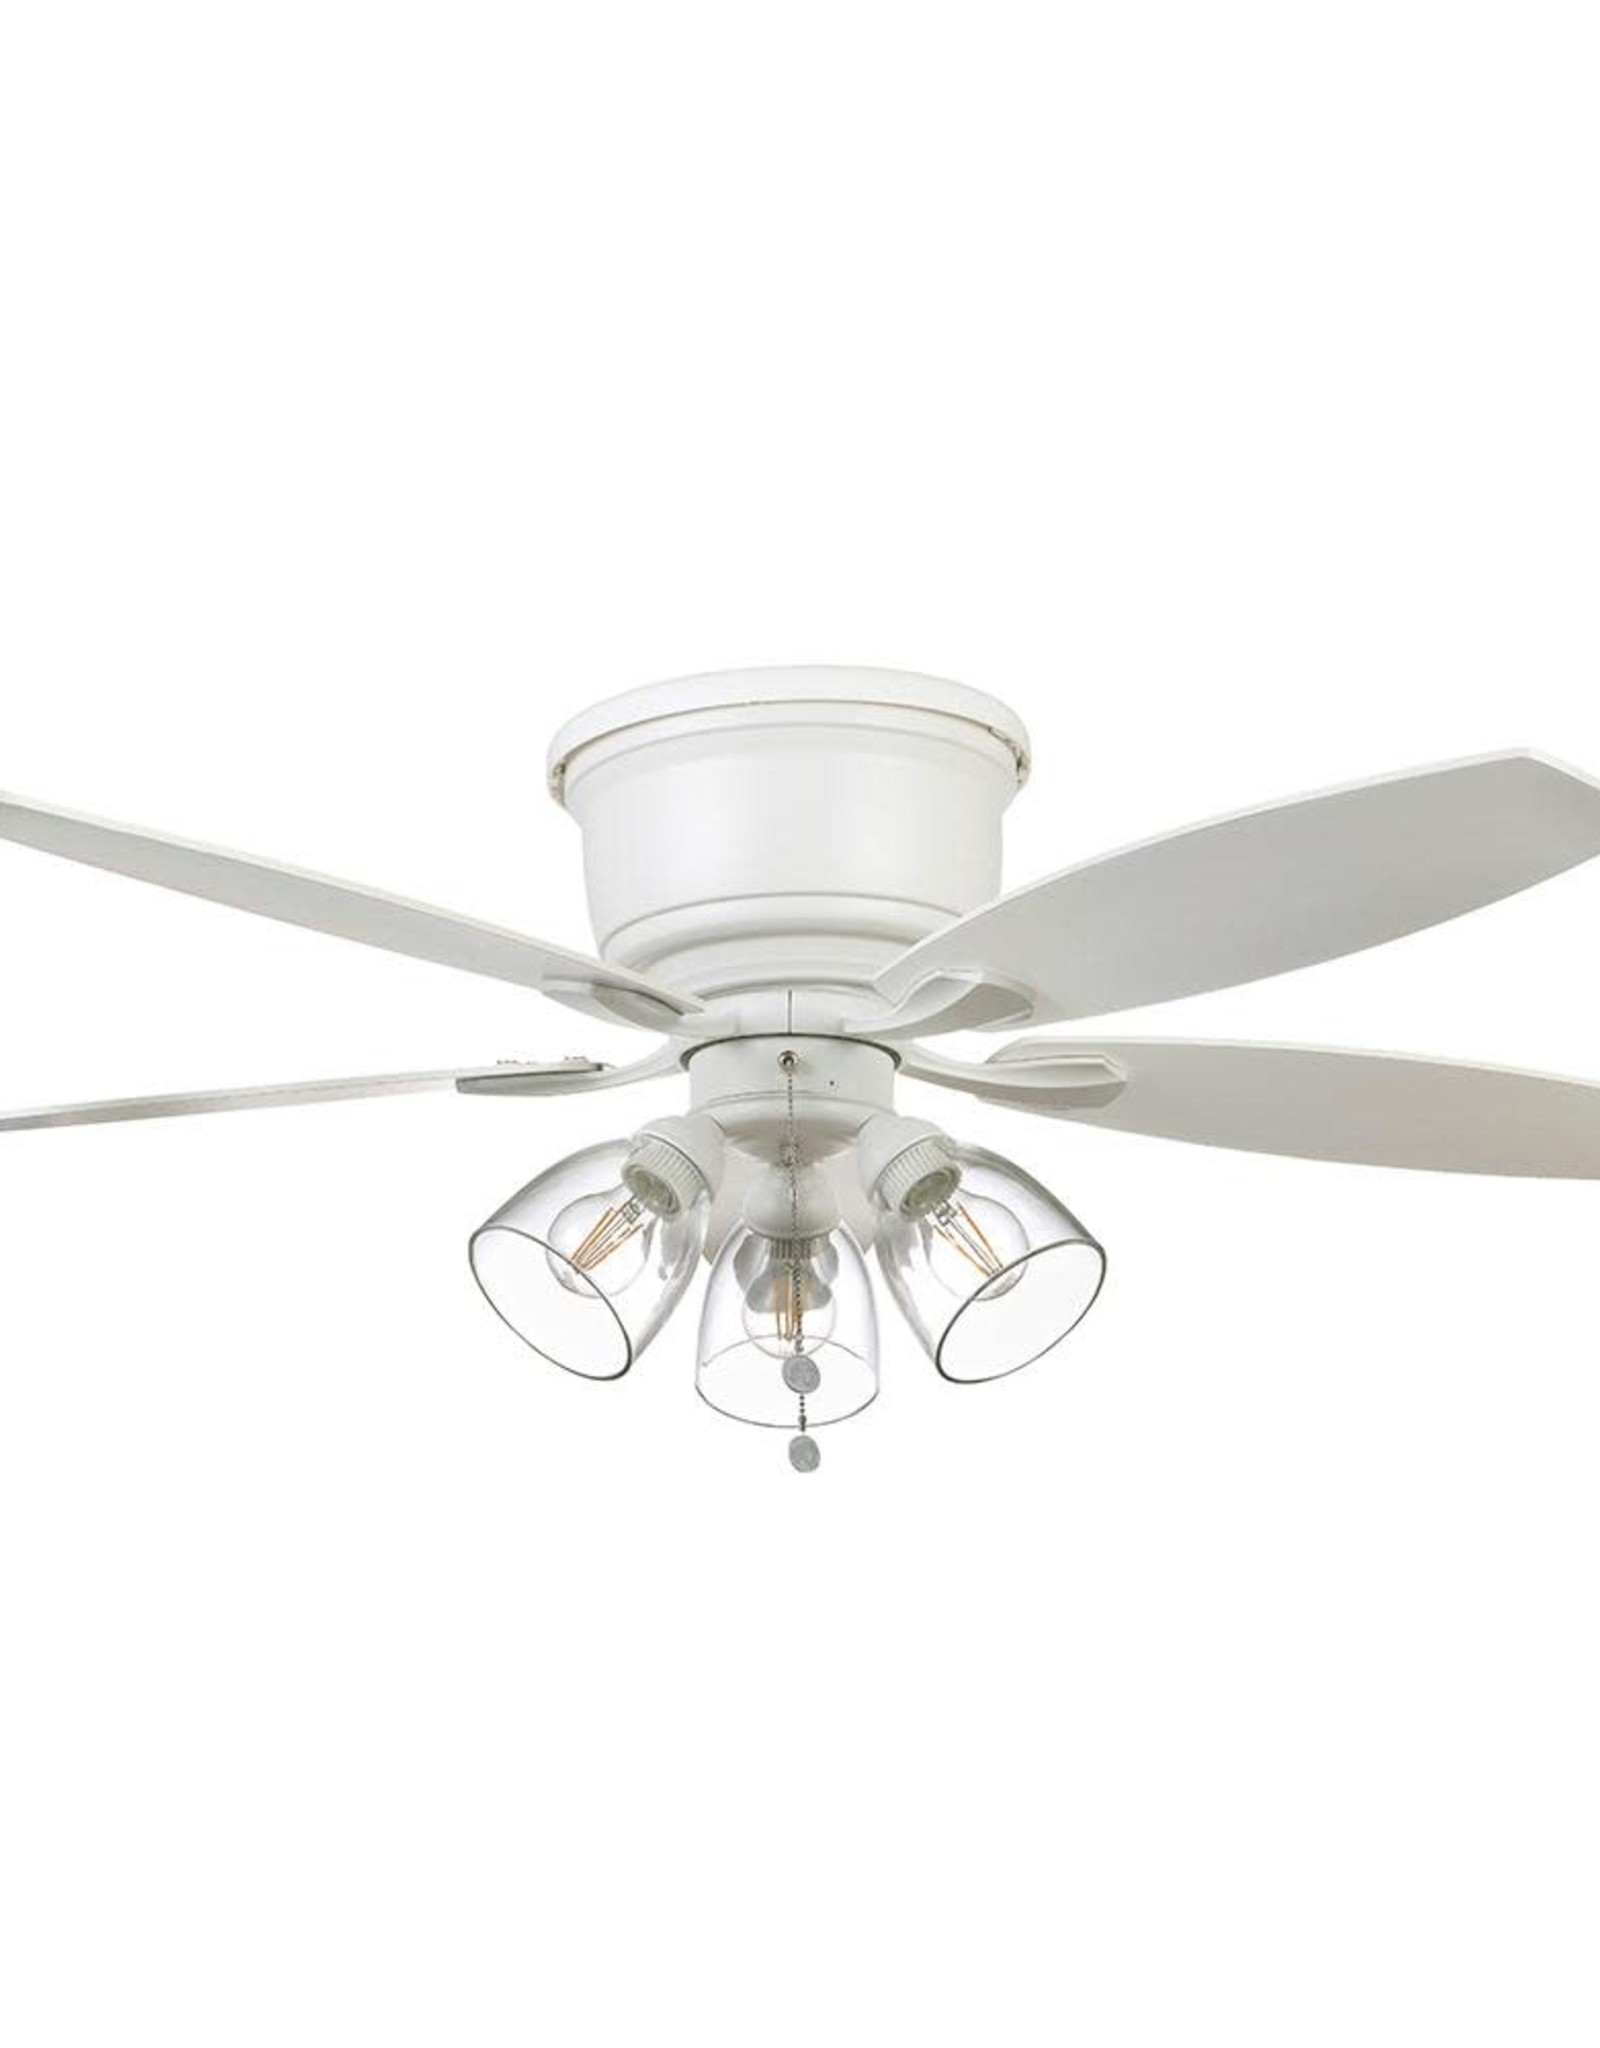 Stoneridge 52 in. Matte White Hugger LED Ceiling Fan with Light Kit